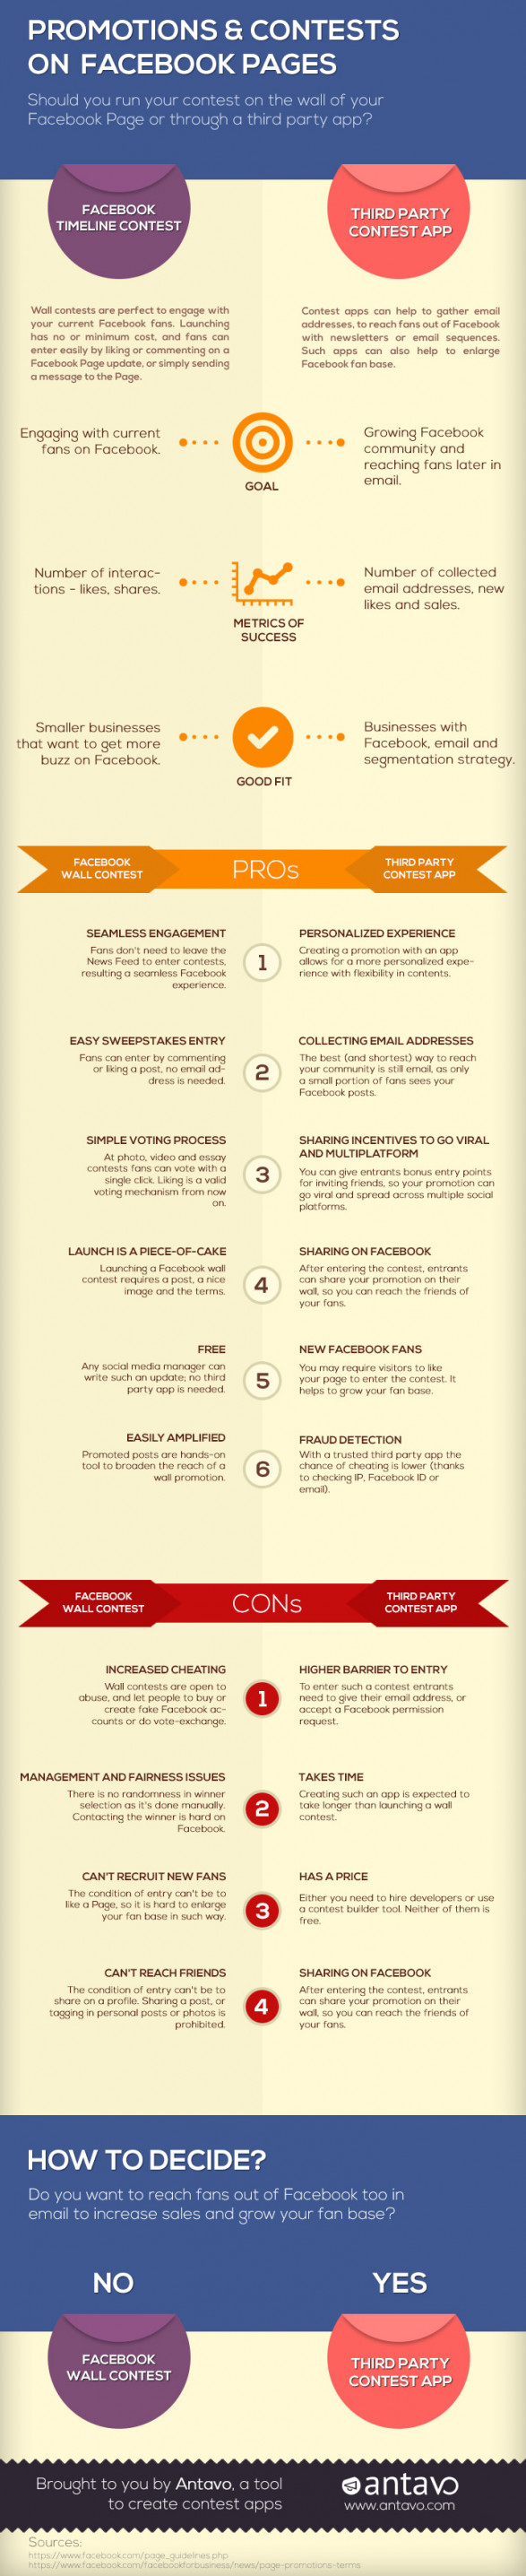 Facebook changes promotion guidelines - Timeline or 3rd party contests?